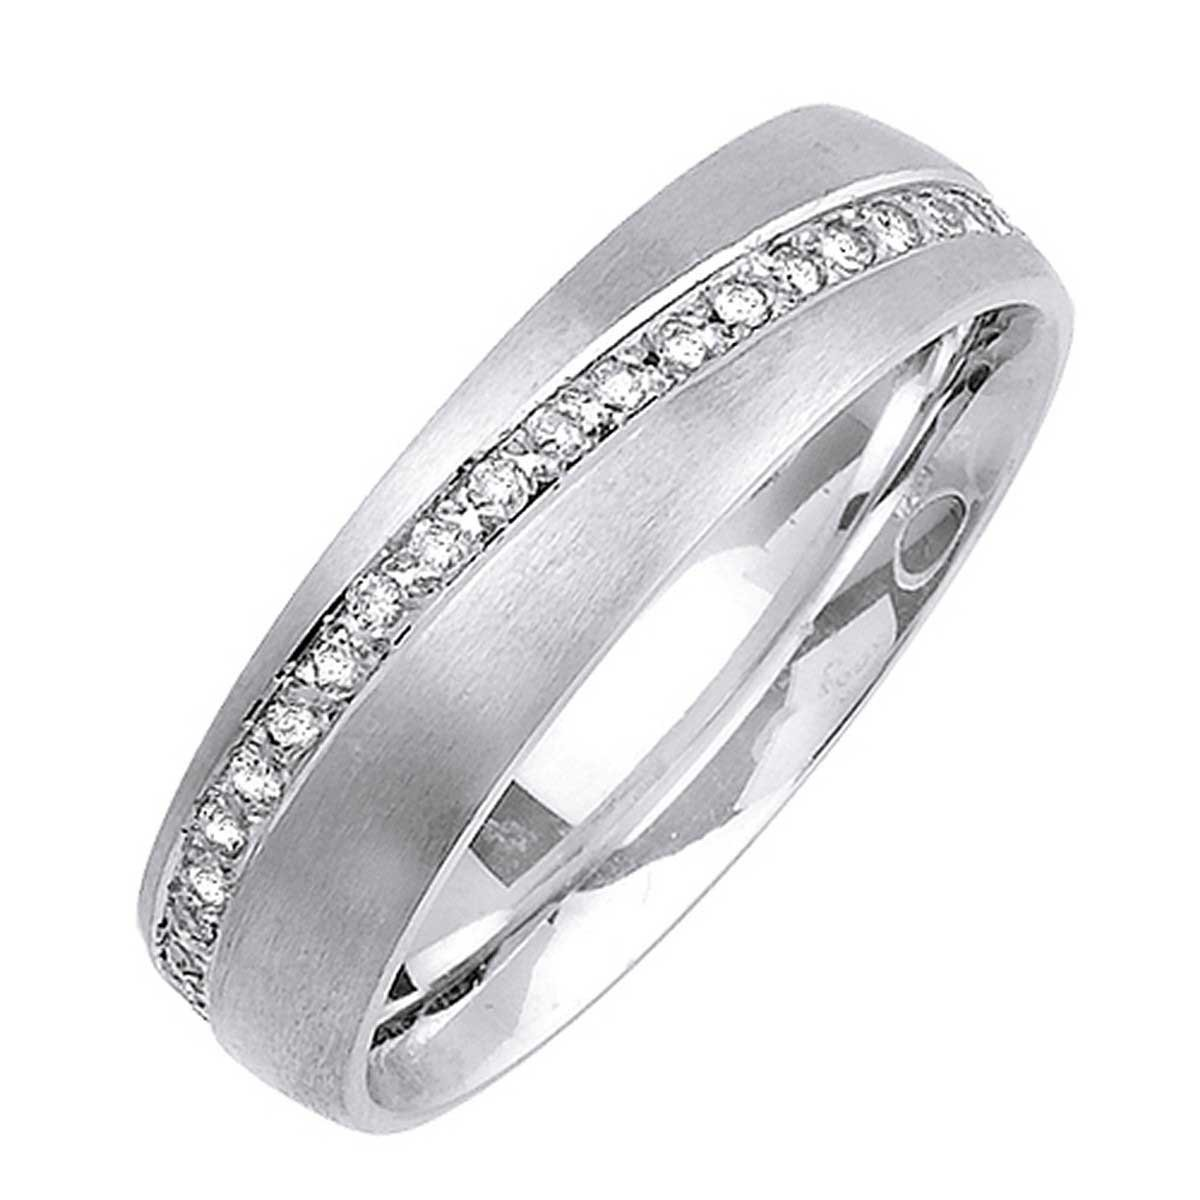 0.48ct TDW White Diamonds 14K White Gold Love Knot Men's Wedding Band (G-H, SI1-SI2) (6mm) Size-9.5c2